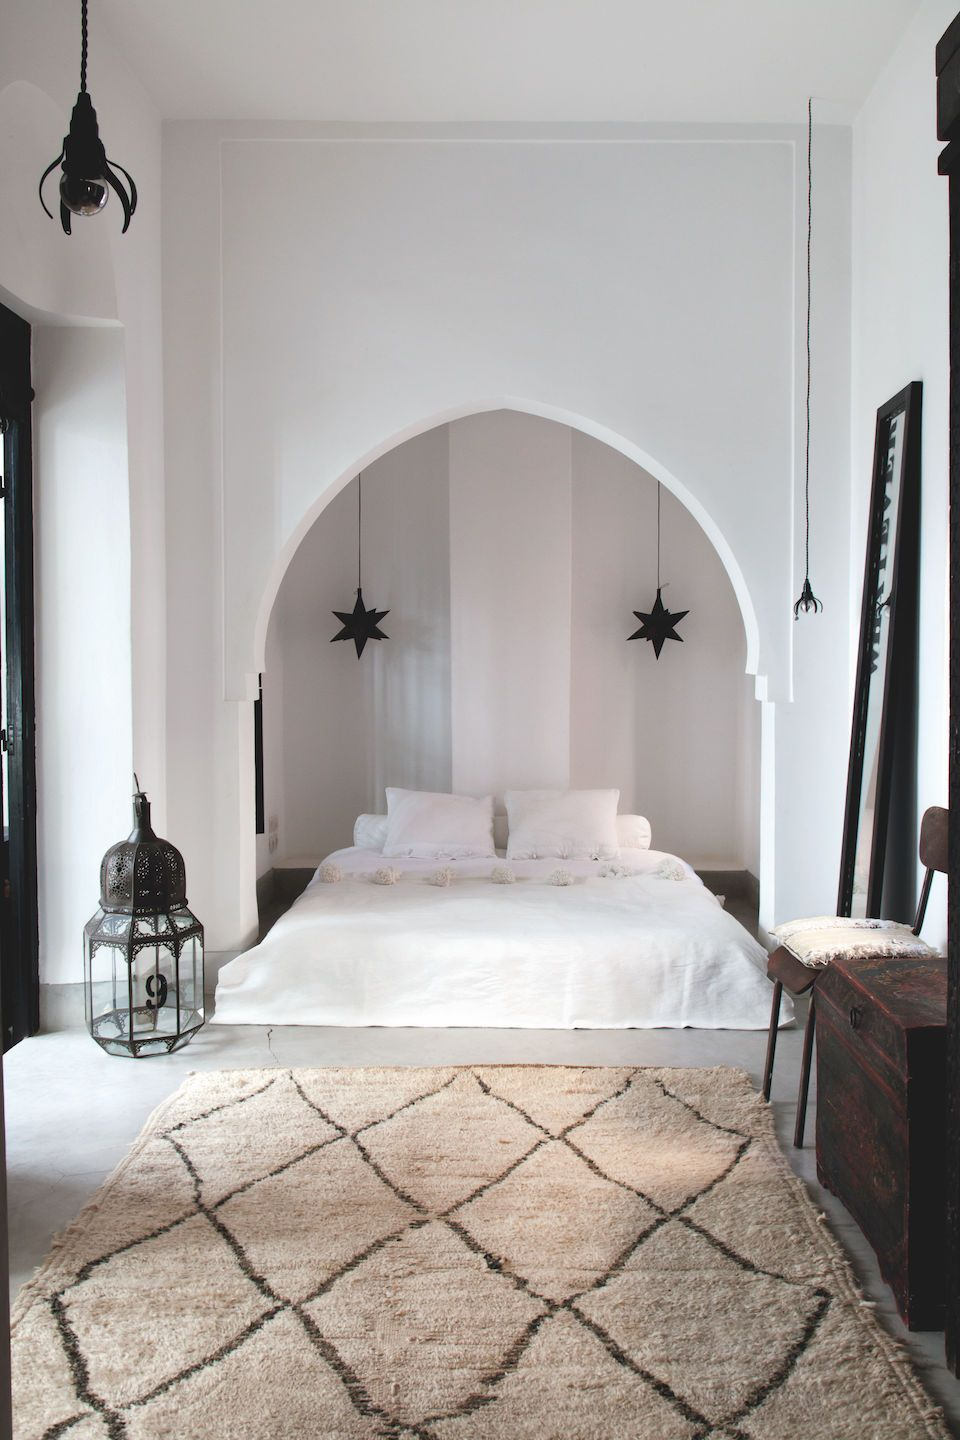 Decoration Marocaine Maison Riad Sur Mesure En 2019 Deco Moroccan Bedroom Bedroom Decor